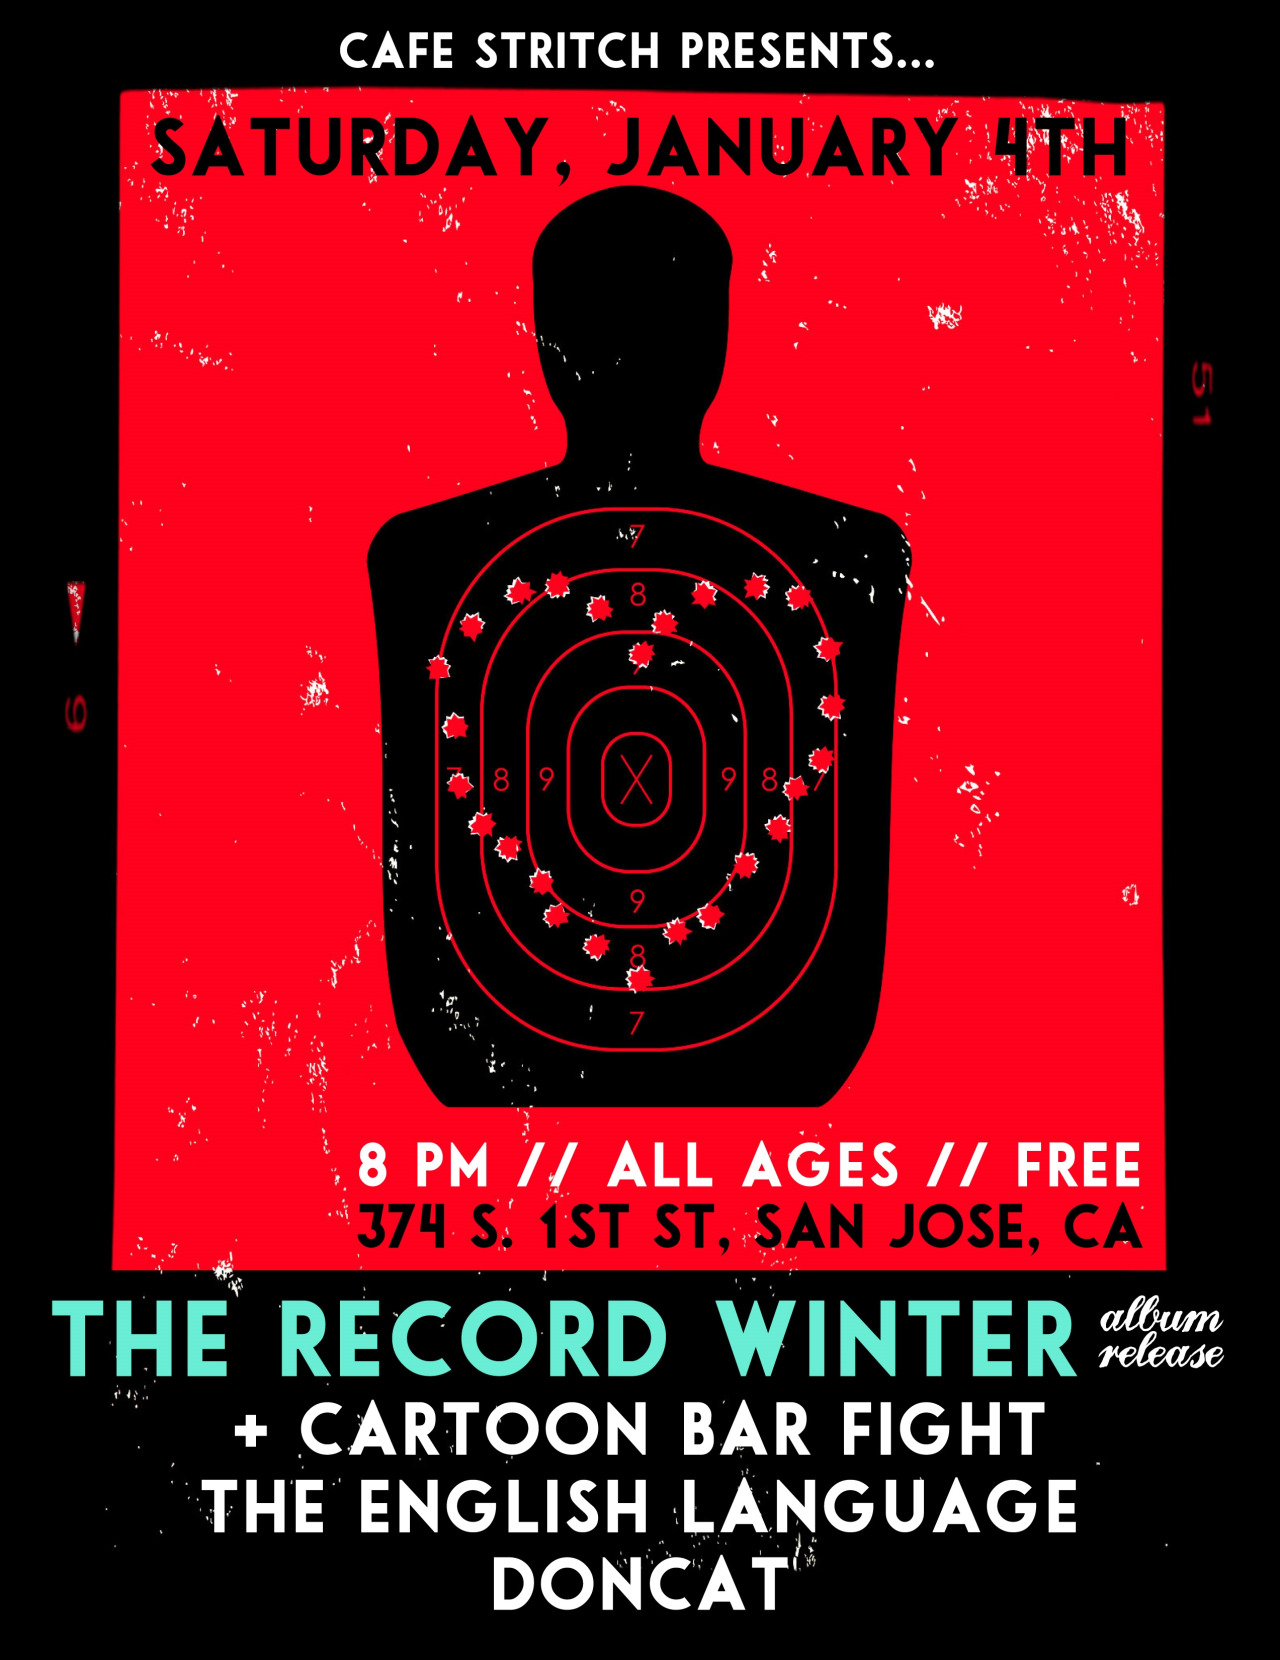 NEW SHOW ANNOUNCED: Sat. 1/4 at Cafe Stritch—The Record Winter's album release! I sang on some of their new tracks and will perform them live. CBF will also be playing new tunes. Facebook event  here ! -Kendall